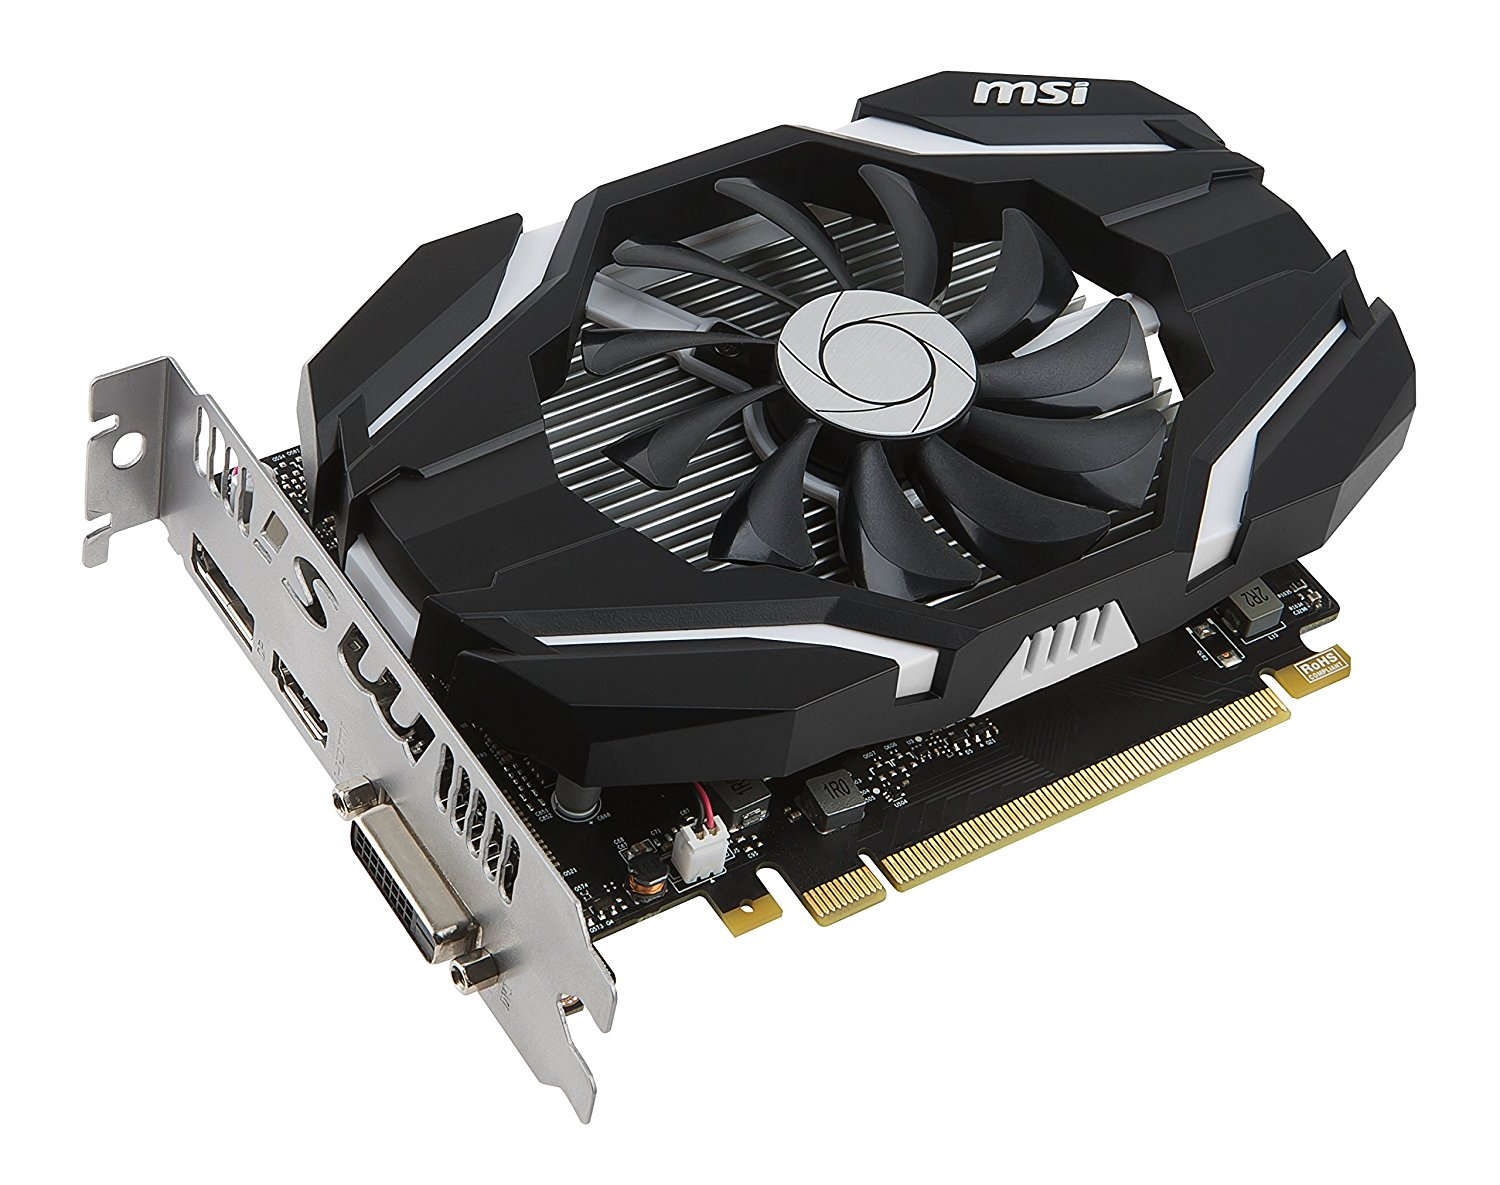 Will a GeForce GTX 1050 Ti fit inside a Pavilion 570-p020